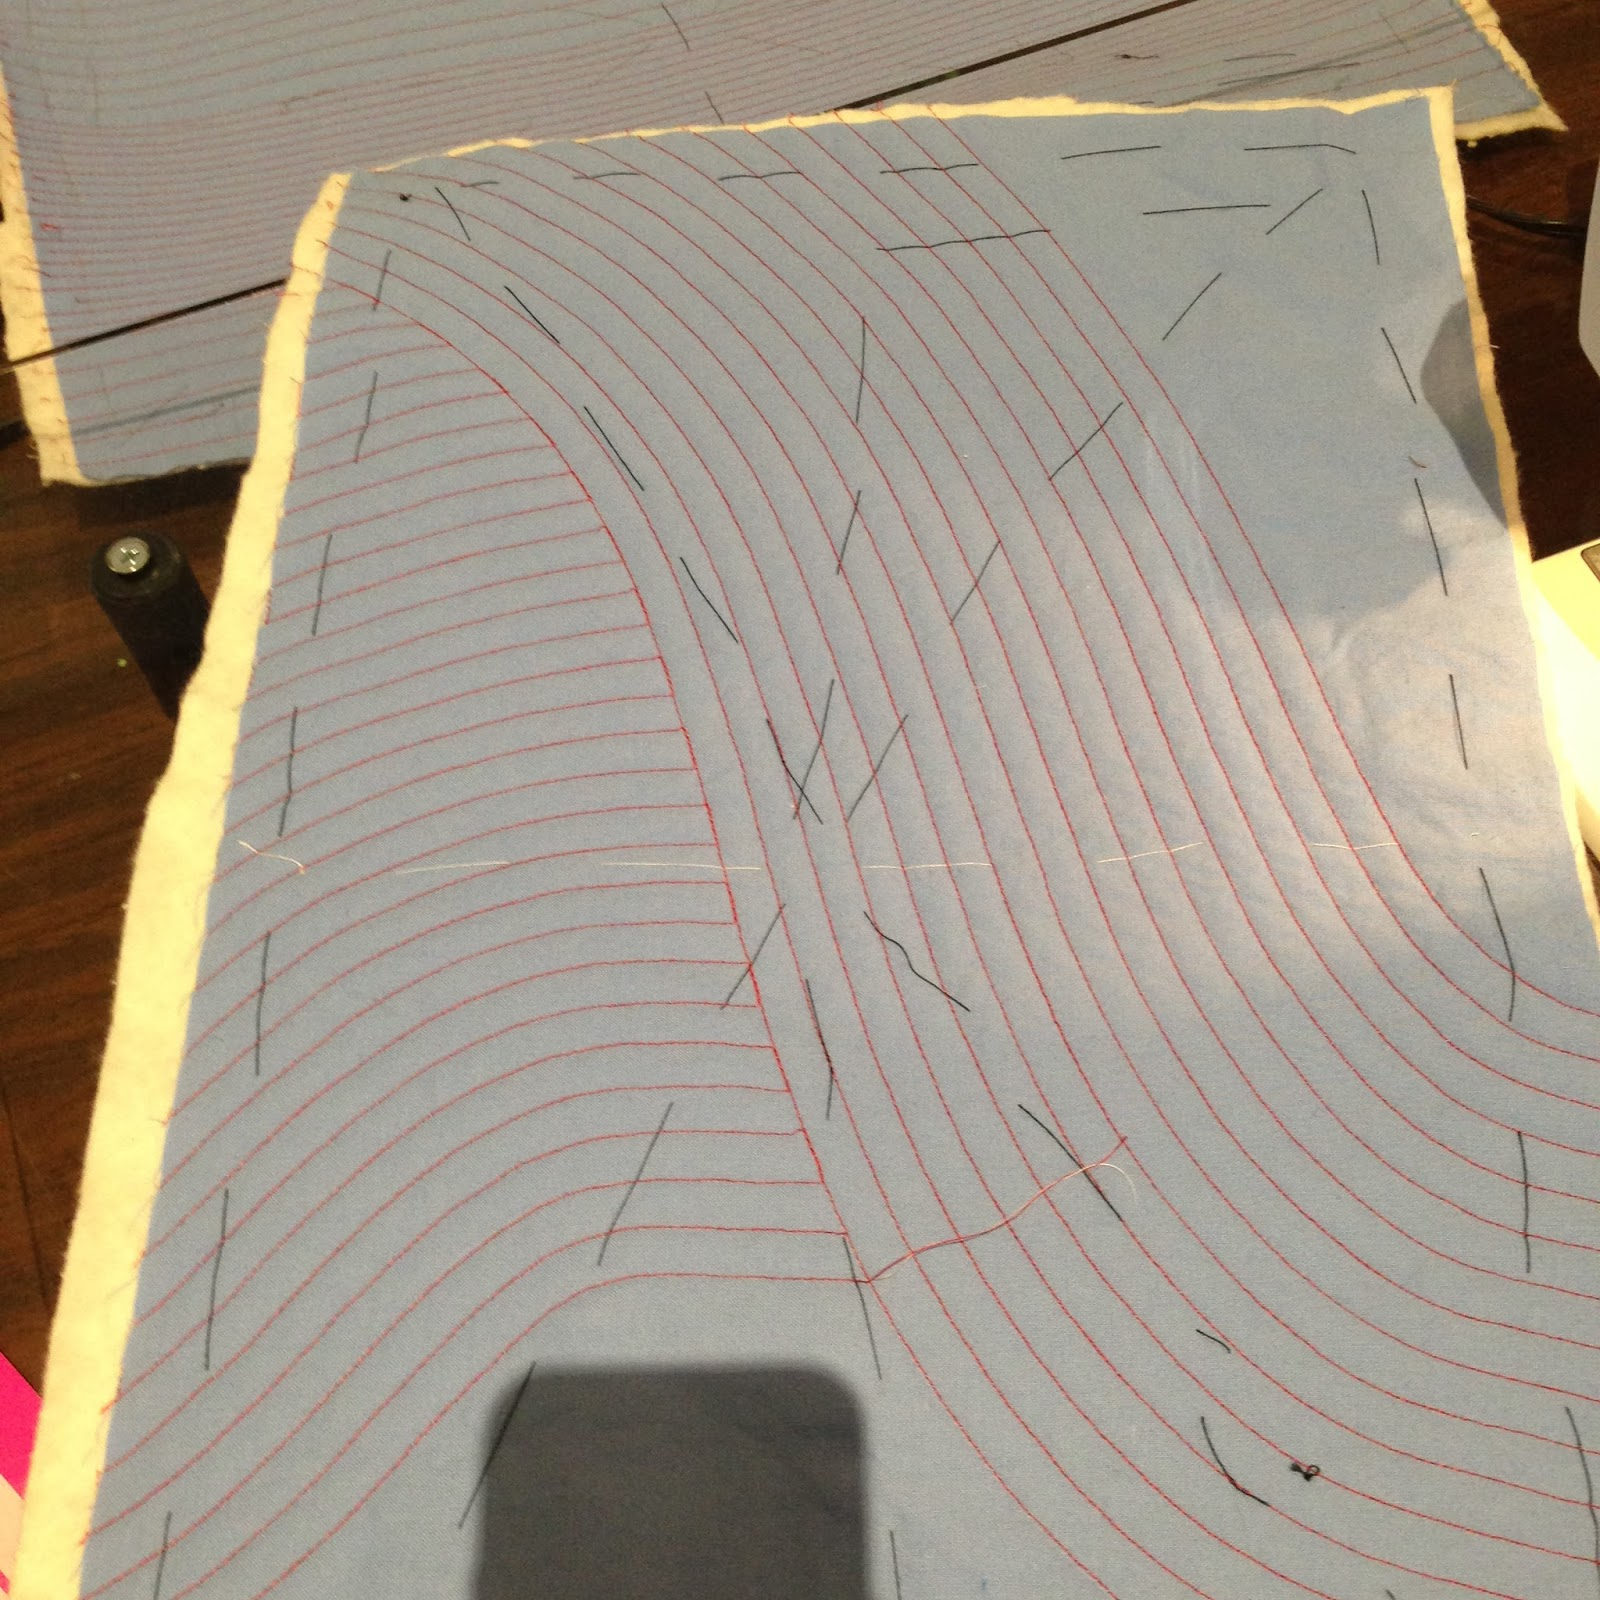 Quilting Patterns Using Walking Foot : The Cozy Quilter: Walking Foot Quilting Class with Jacquie Gering